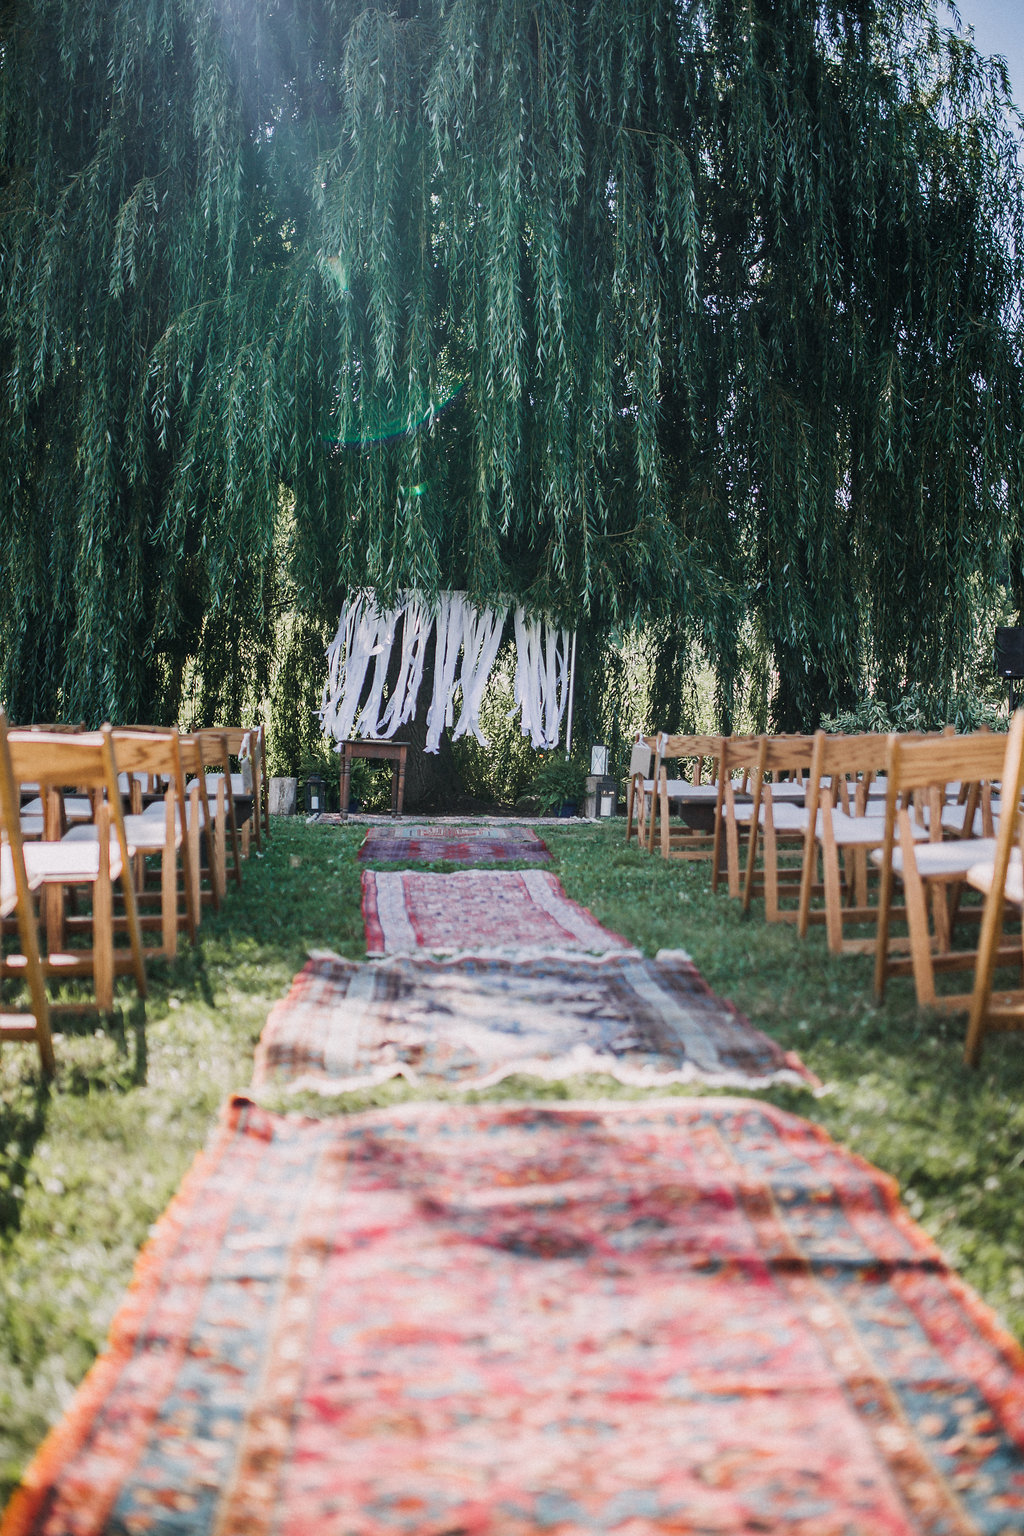 Monica_Relyea_Events_Dawn_Honsky_Photography_Nostrano_vineyard_ceremony_rug_aisle_boho_bride_and_groom_Meg_and_TJ